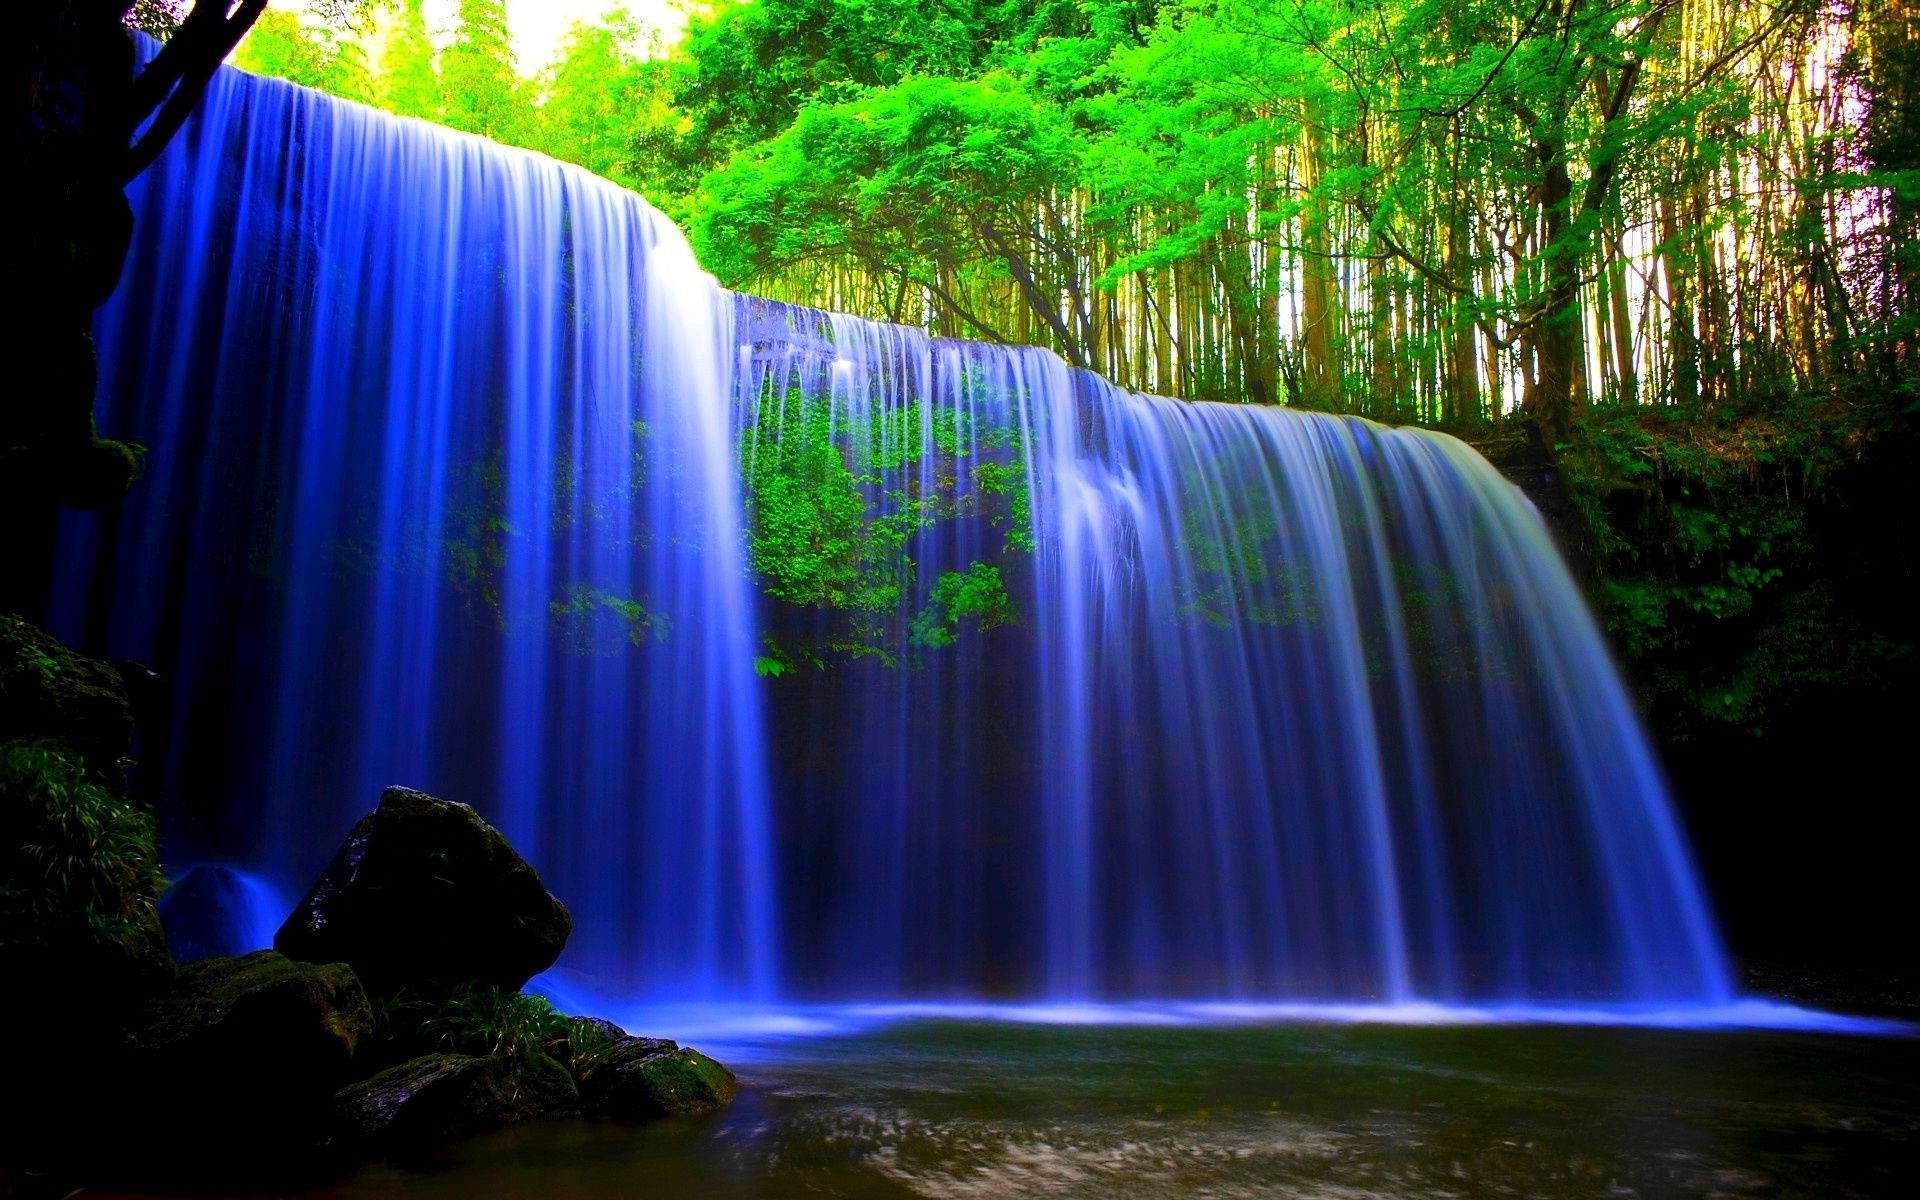 3d Live Waterfall Wallpaper For Desktop Neon Waterfall Iphone Wallpapers For Free